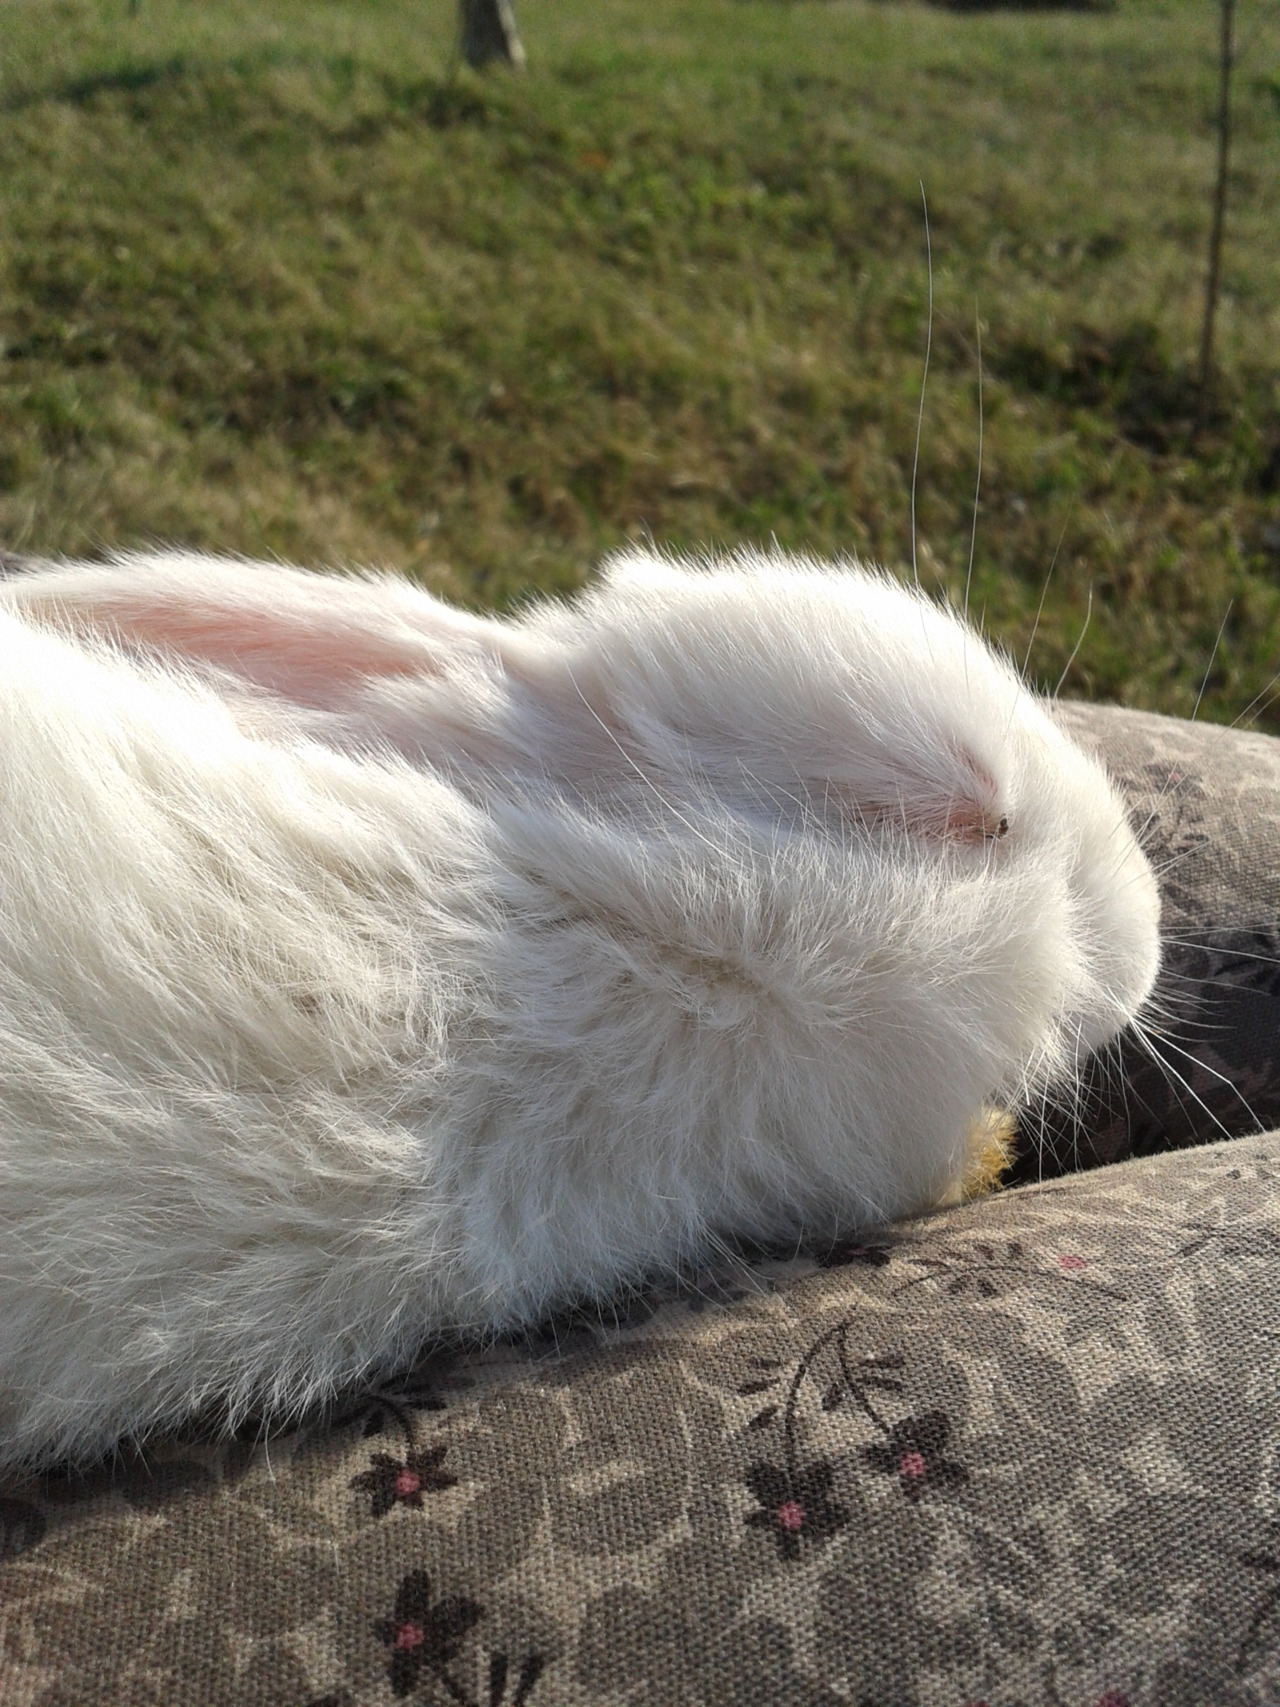 Bunny Takes a Lap Nap in the Sunshine